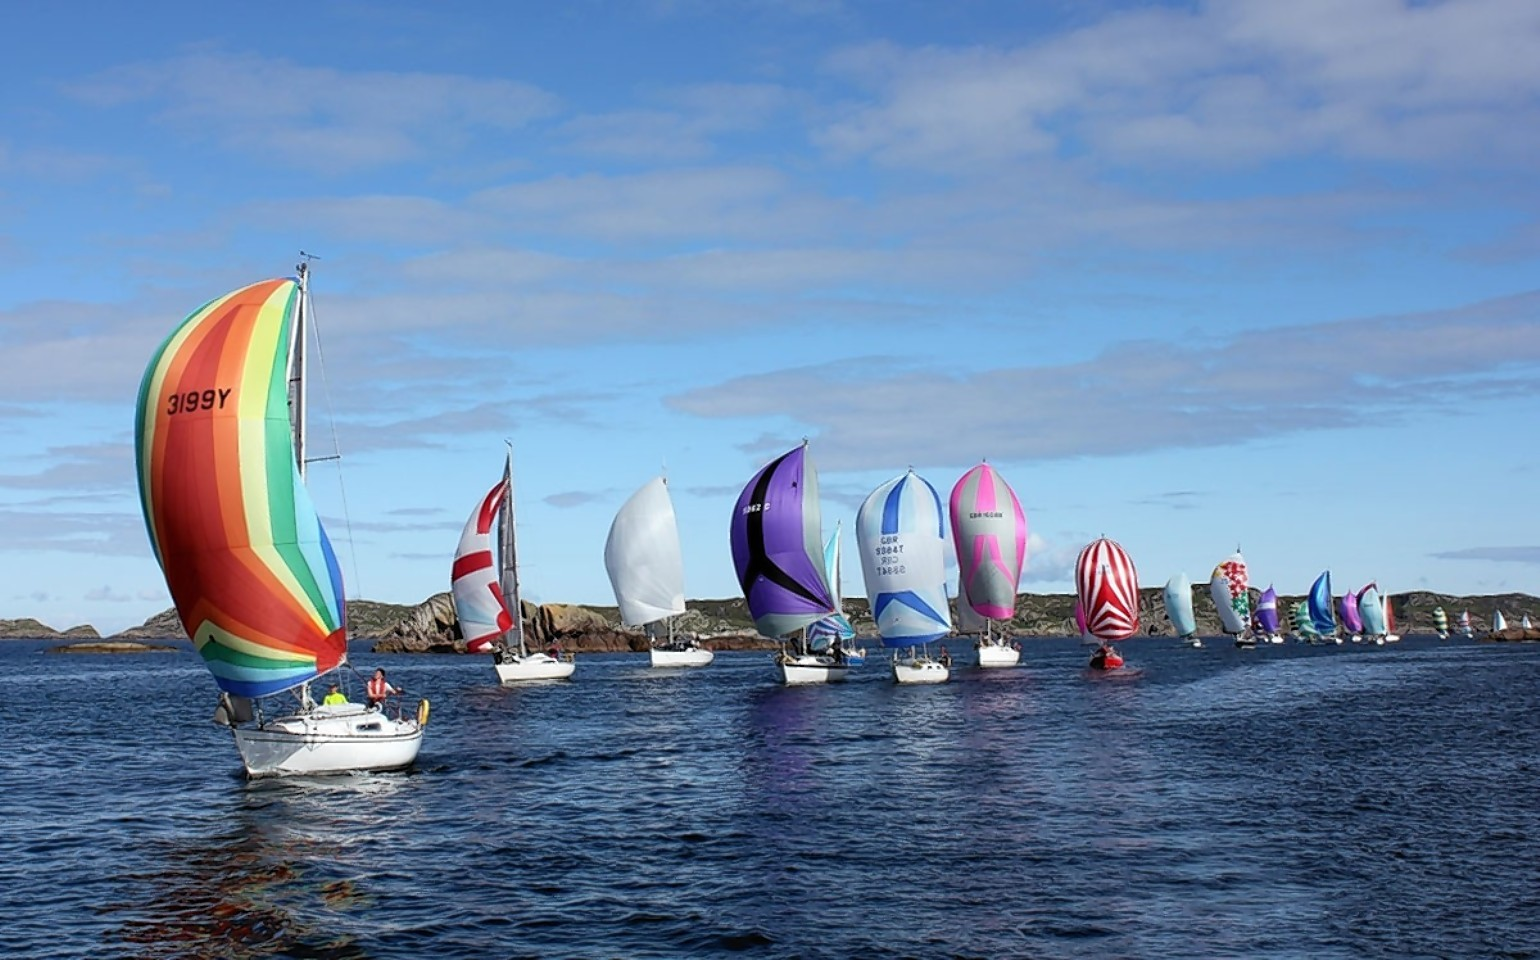 Sailing clubs across the country will take part.